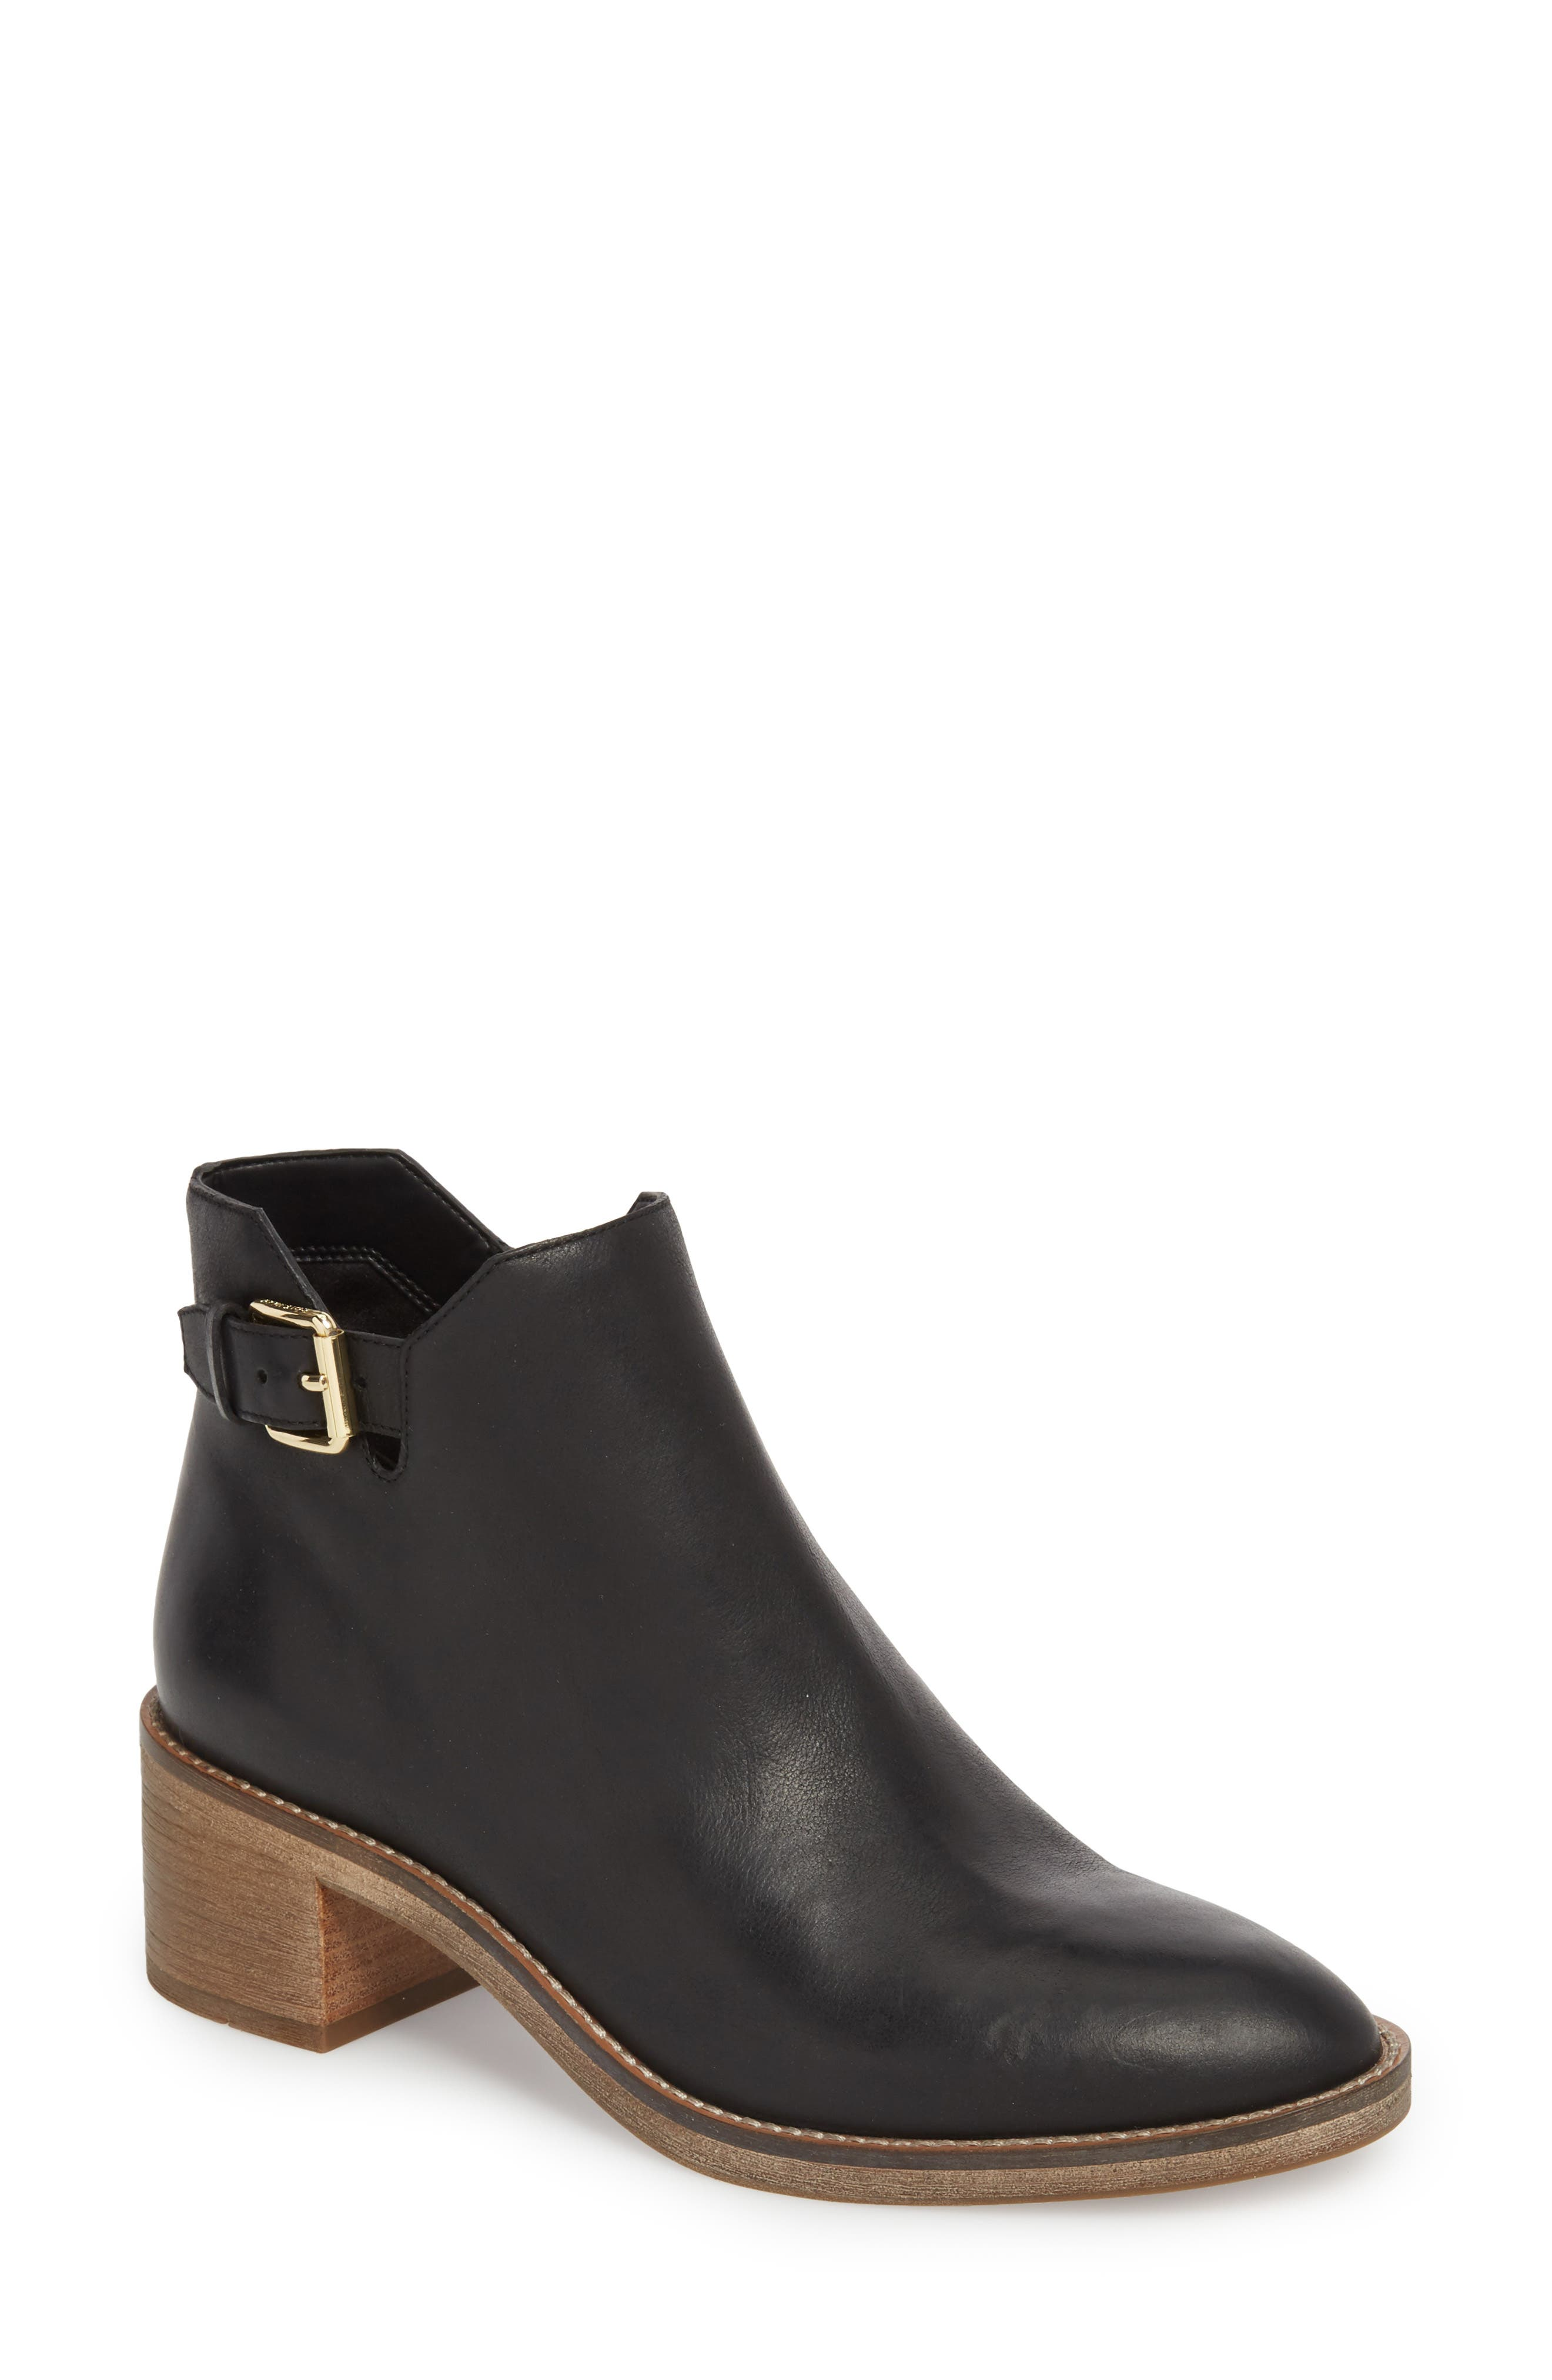 COLE HAAN, Harrington Grand Buckle Bootie, Main thumbnail 1, color, BLACK LEATHER